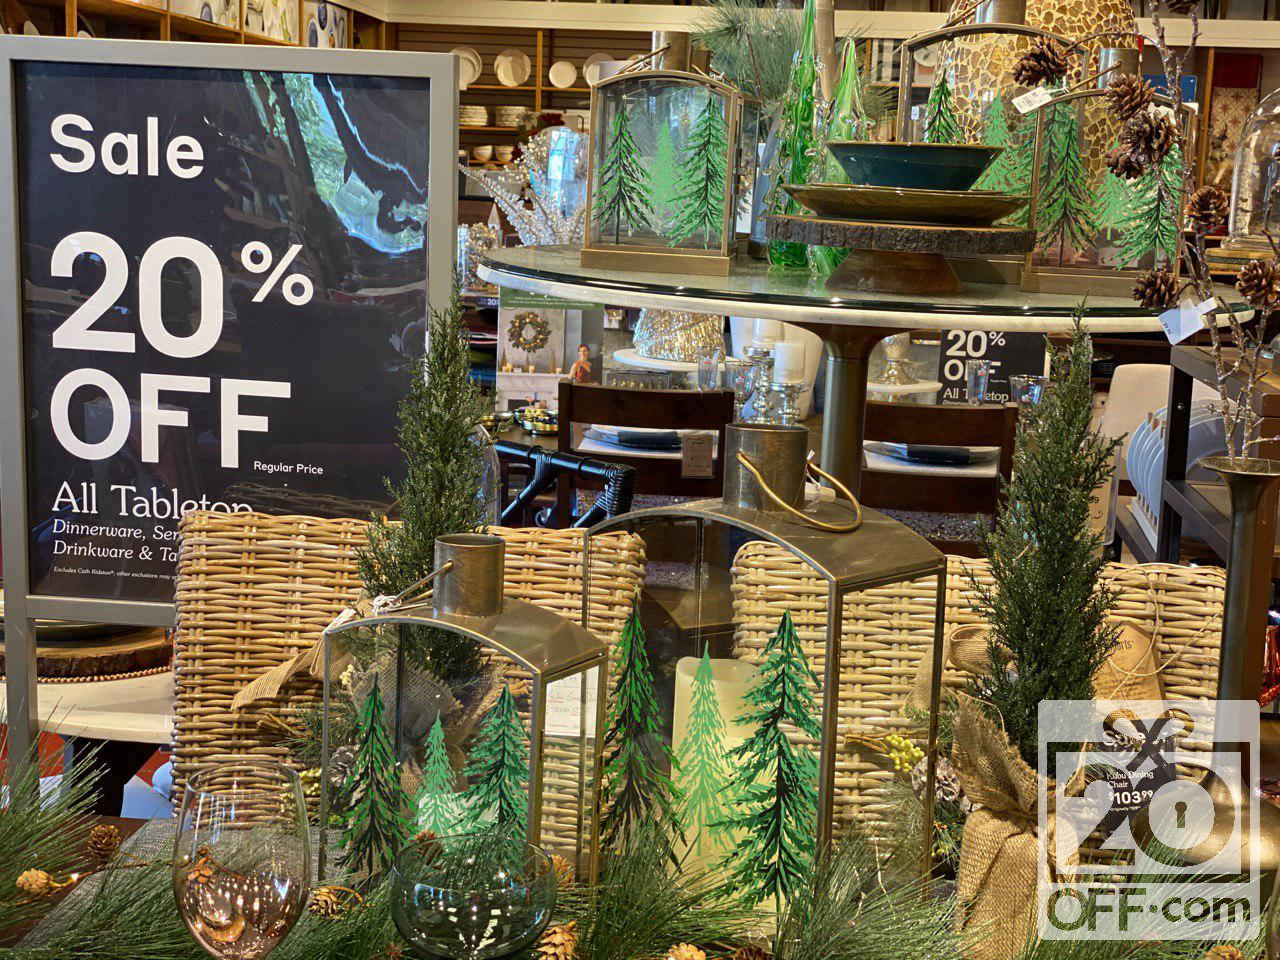 Pier 1 20% off Coupon